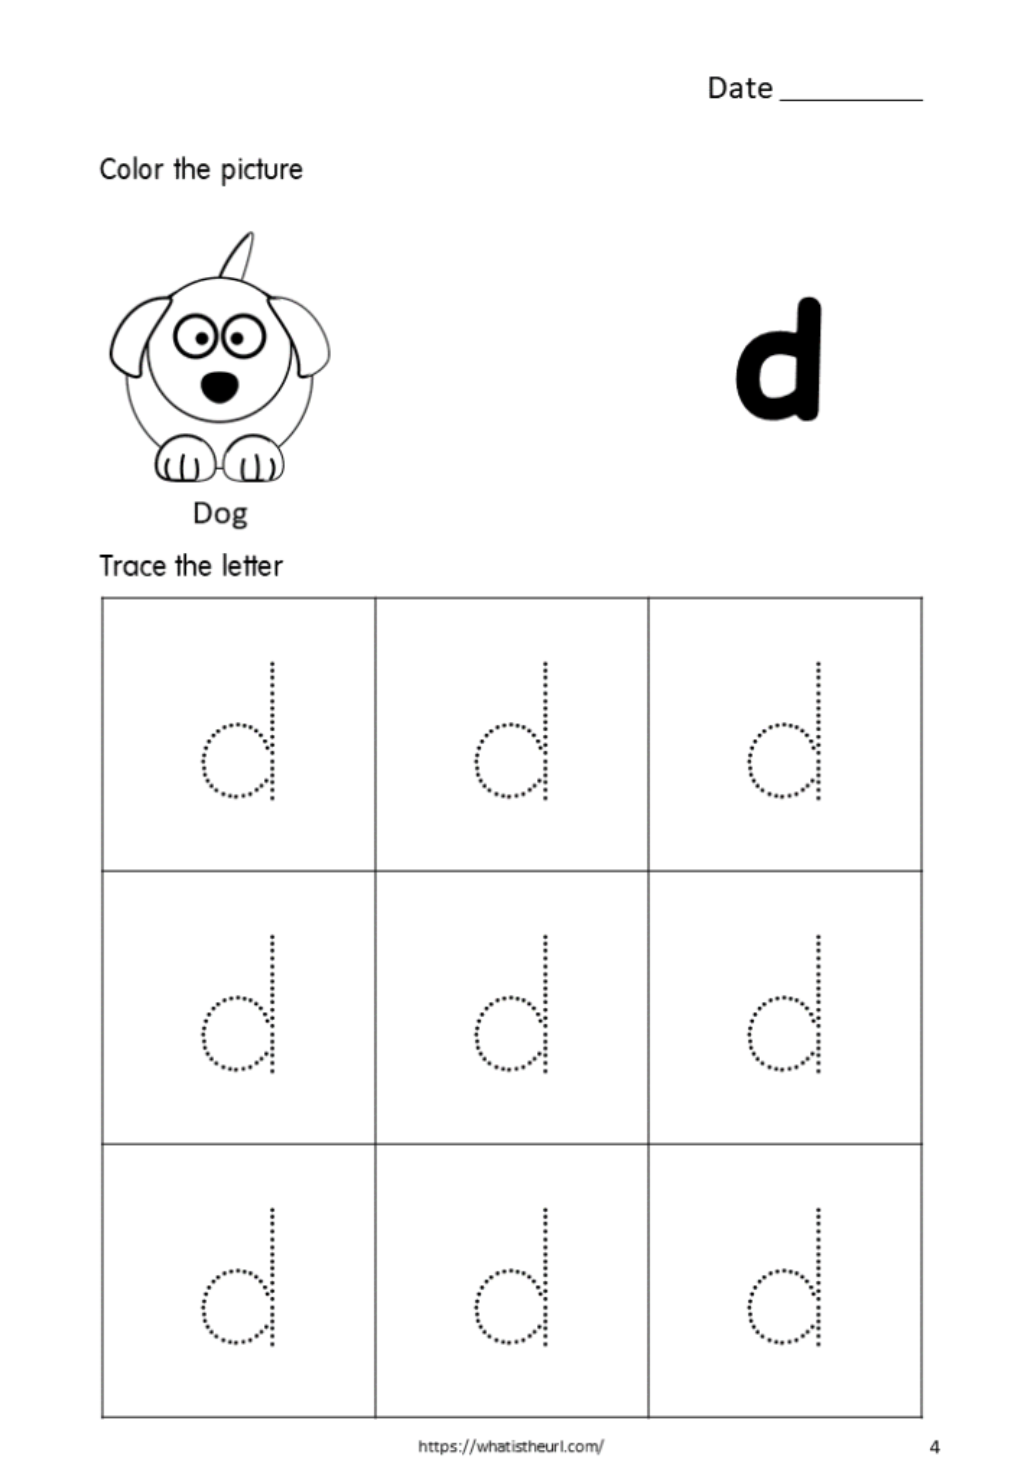 Printable-Tracing-Letters-Small-Letter-D-For-Kids - Your pertaining to Letter Tracing D